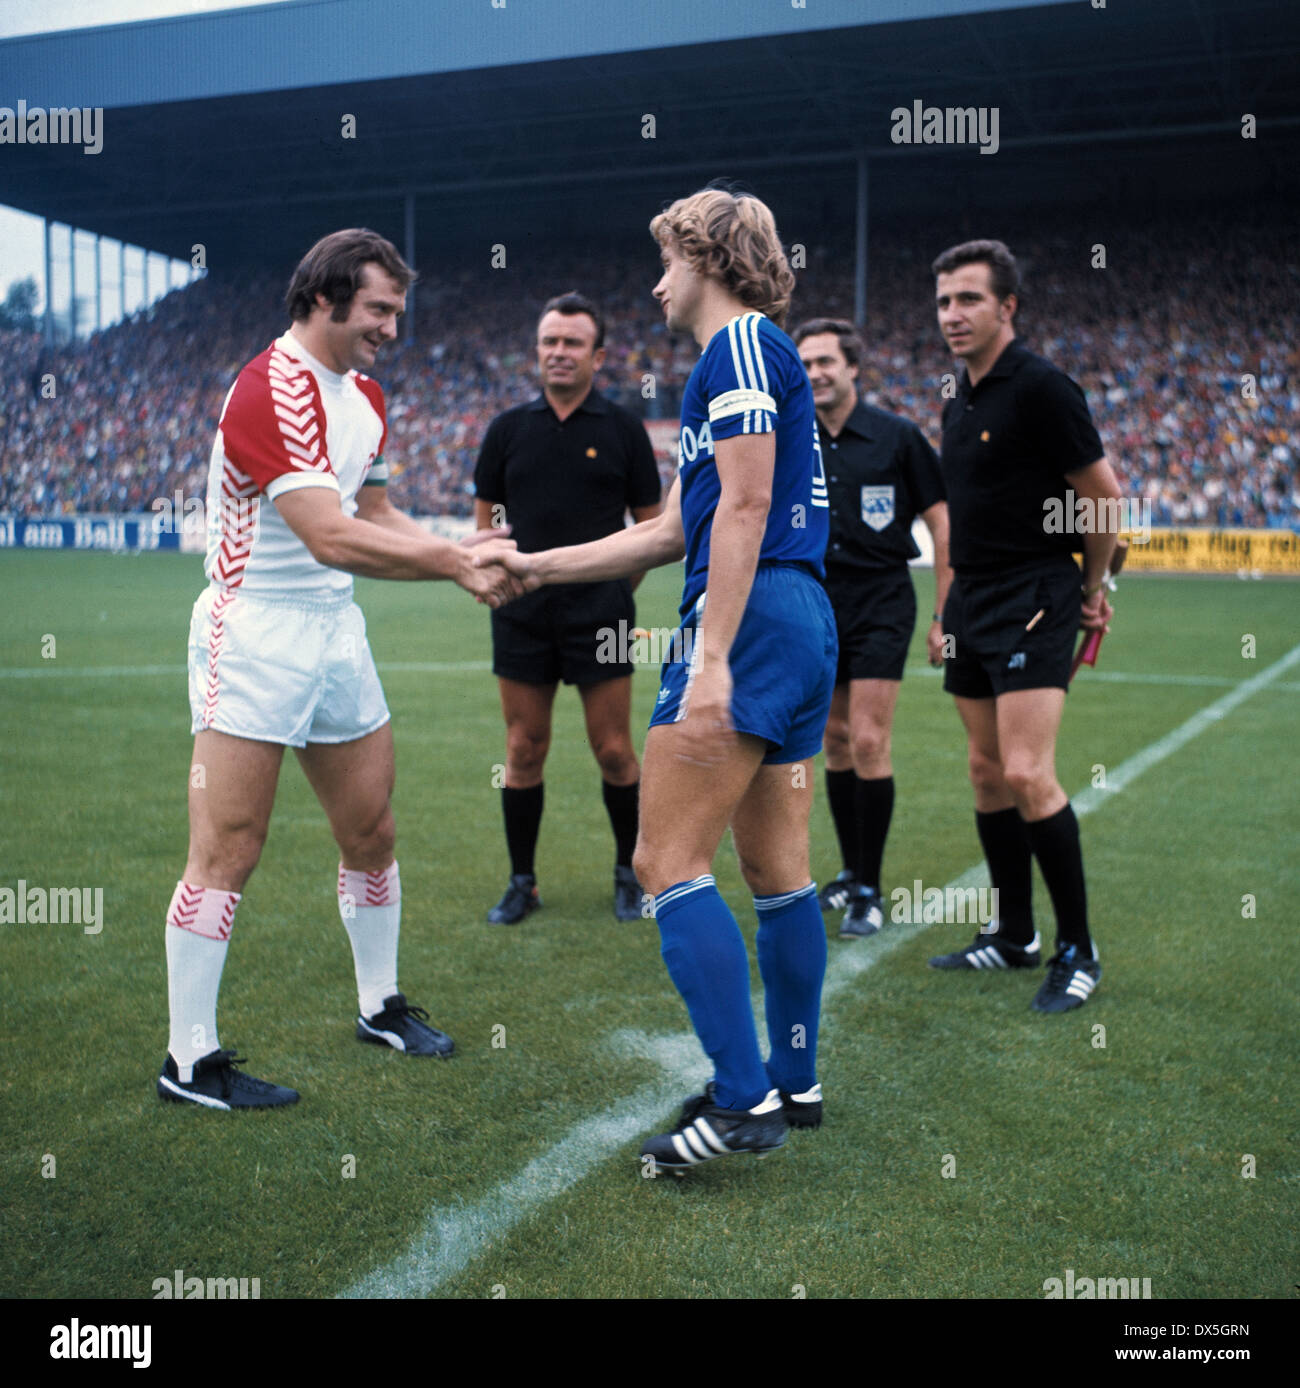 football, Bundesliga, 1975/1976, Georg Melches Stadium, Rot Weiss Essen versus FC Schalke 04 0:0, welcome of the team leaders Willi Lippens (RWE) left and Helmut Kremers (S04), behind referee Heinz Aldinger and assistants - Stock Image